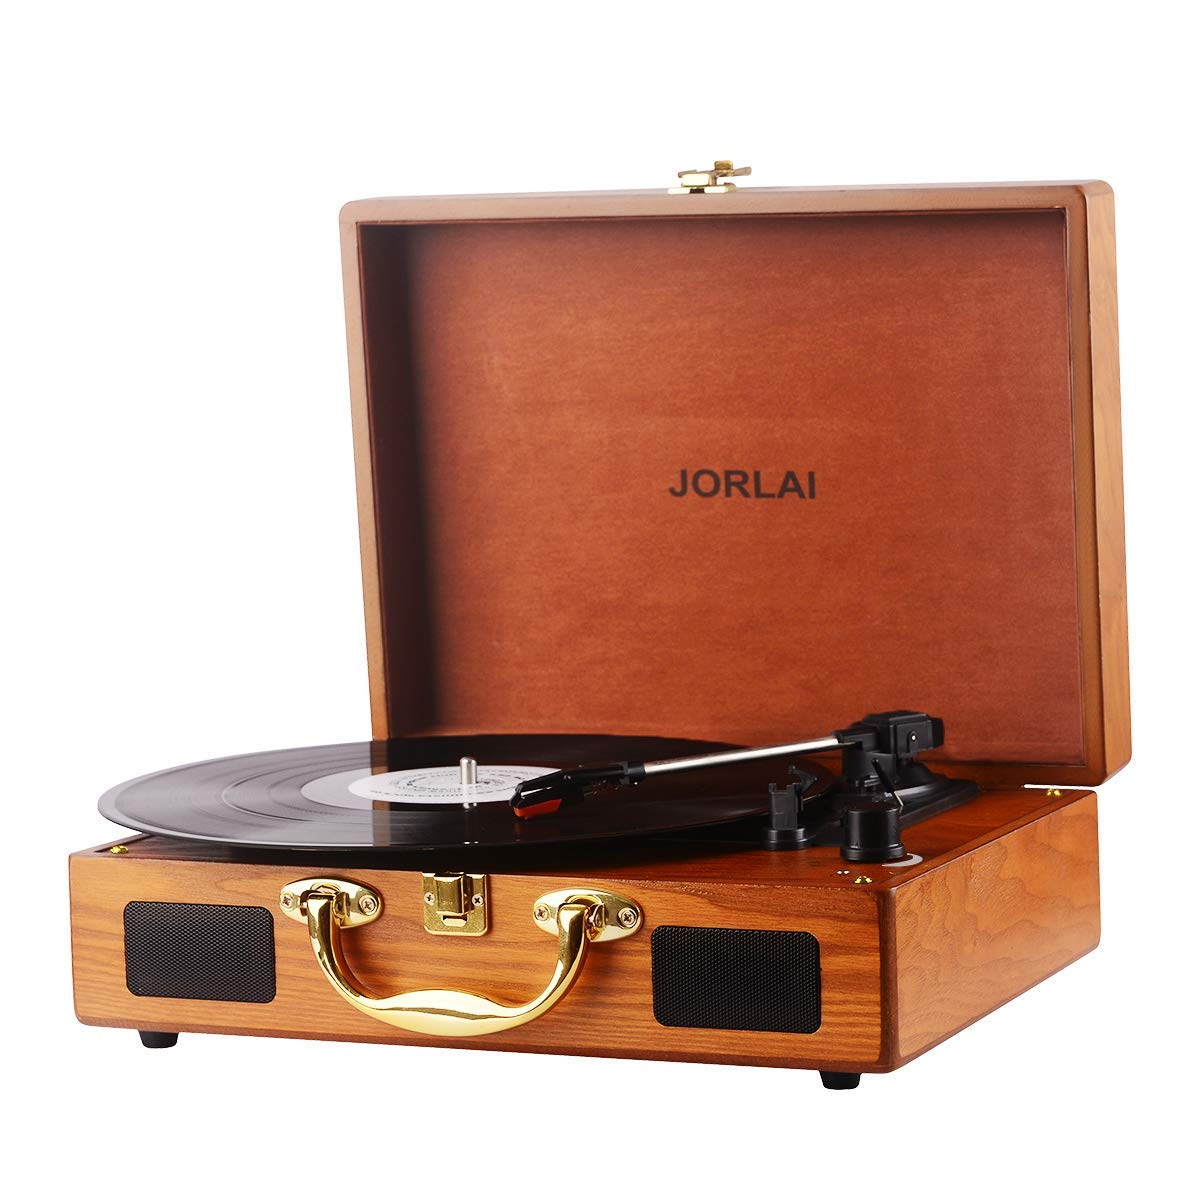 JORLAI Vinyl Record Player, 3 Speed Suitcase Turntable with Speakers, Portable LP Vinyl Player Aux-in, Headphone Jack, and RCA Output - Natural Wood by JORLAI (Image #8)